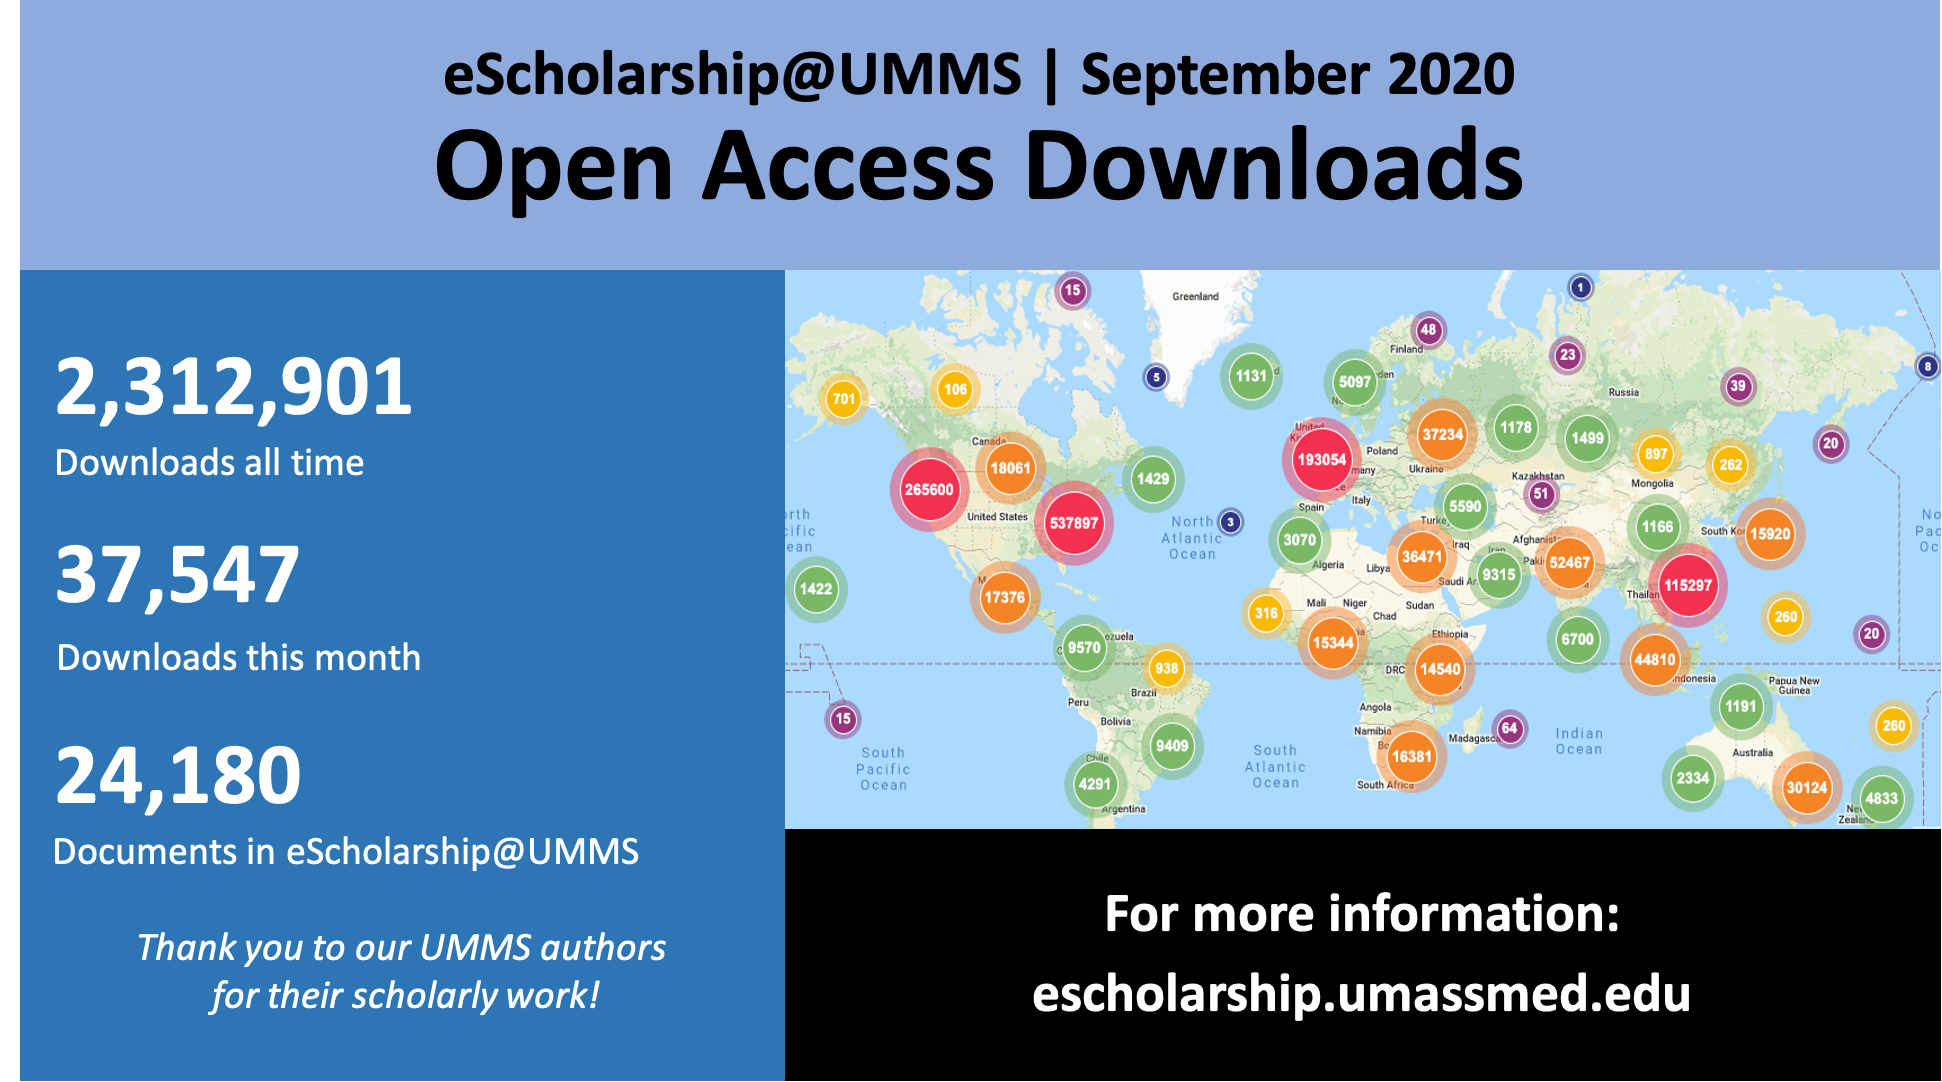 Infographic of eScholarship@UMMS open access downloads for September 2020